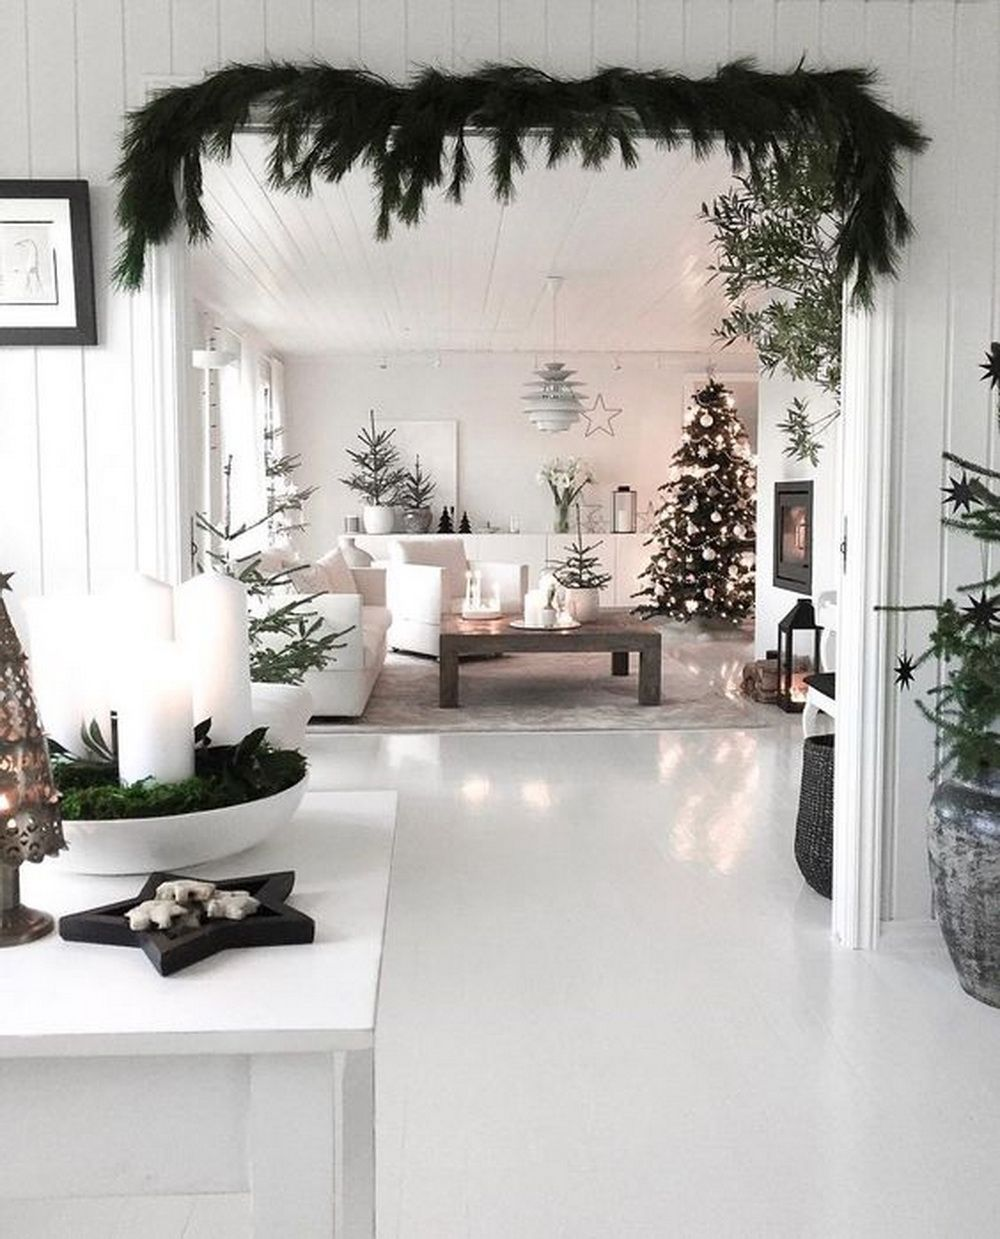 25 Outstanding Scandinavian Holiday Decoration Ideas That Will Inspire You Deco In 2020 Christmas Staircase Decor Outdoor Christmas Tree Decorations Staircase Decor